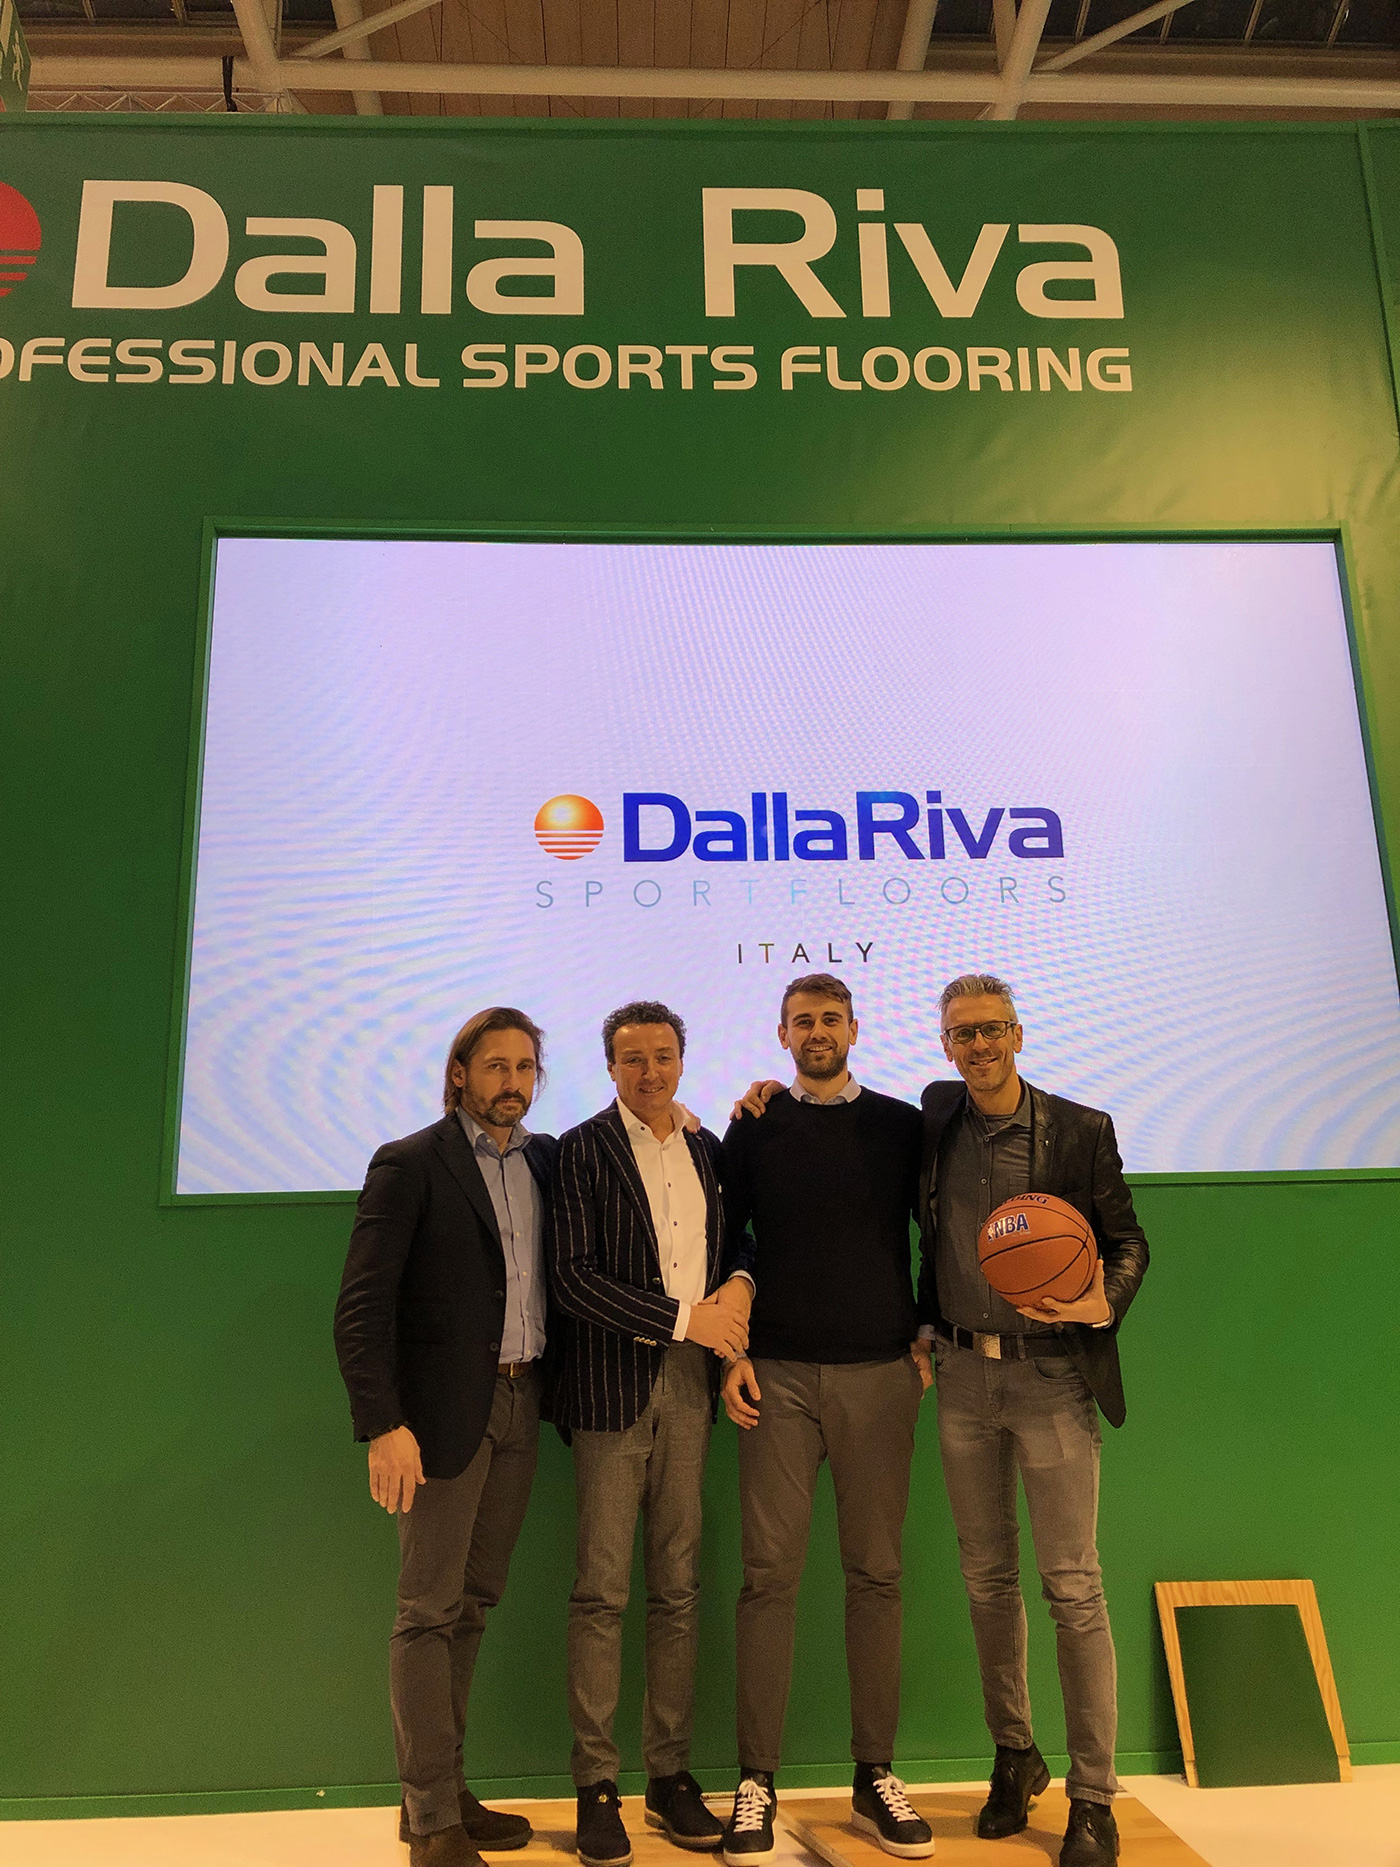 The complete Dalla Riva staff in Germany